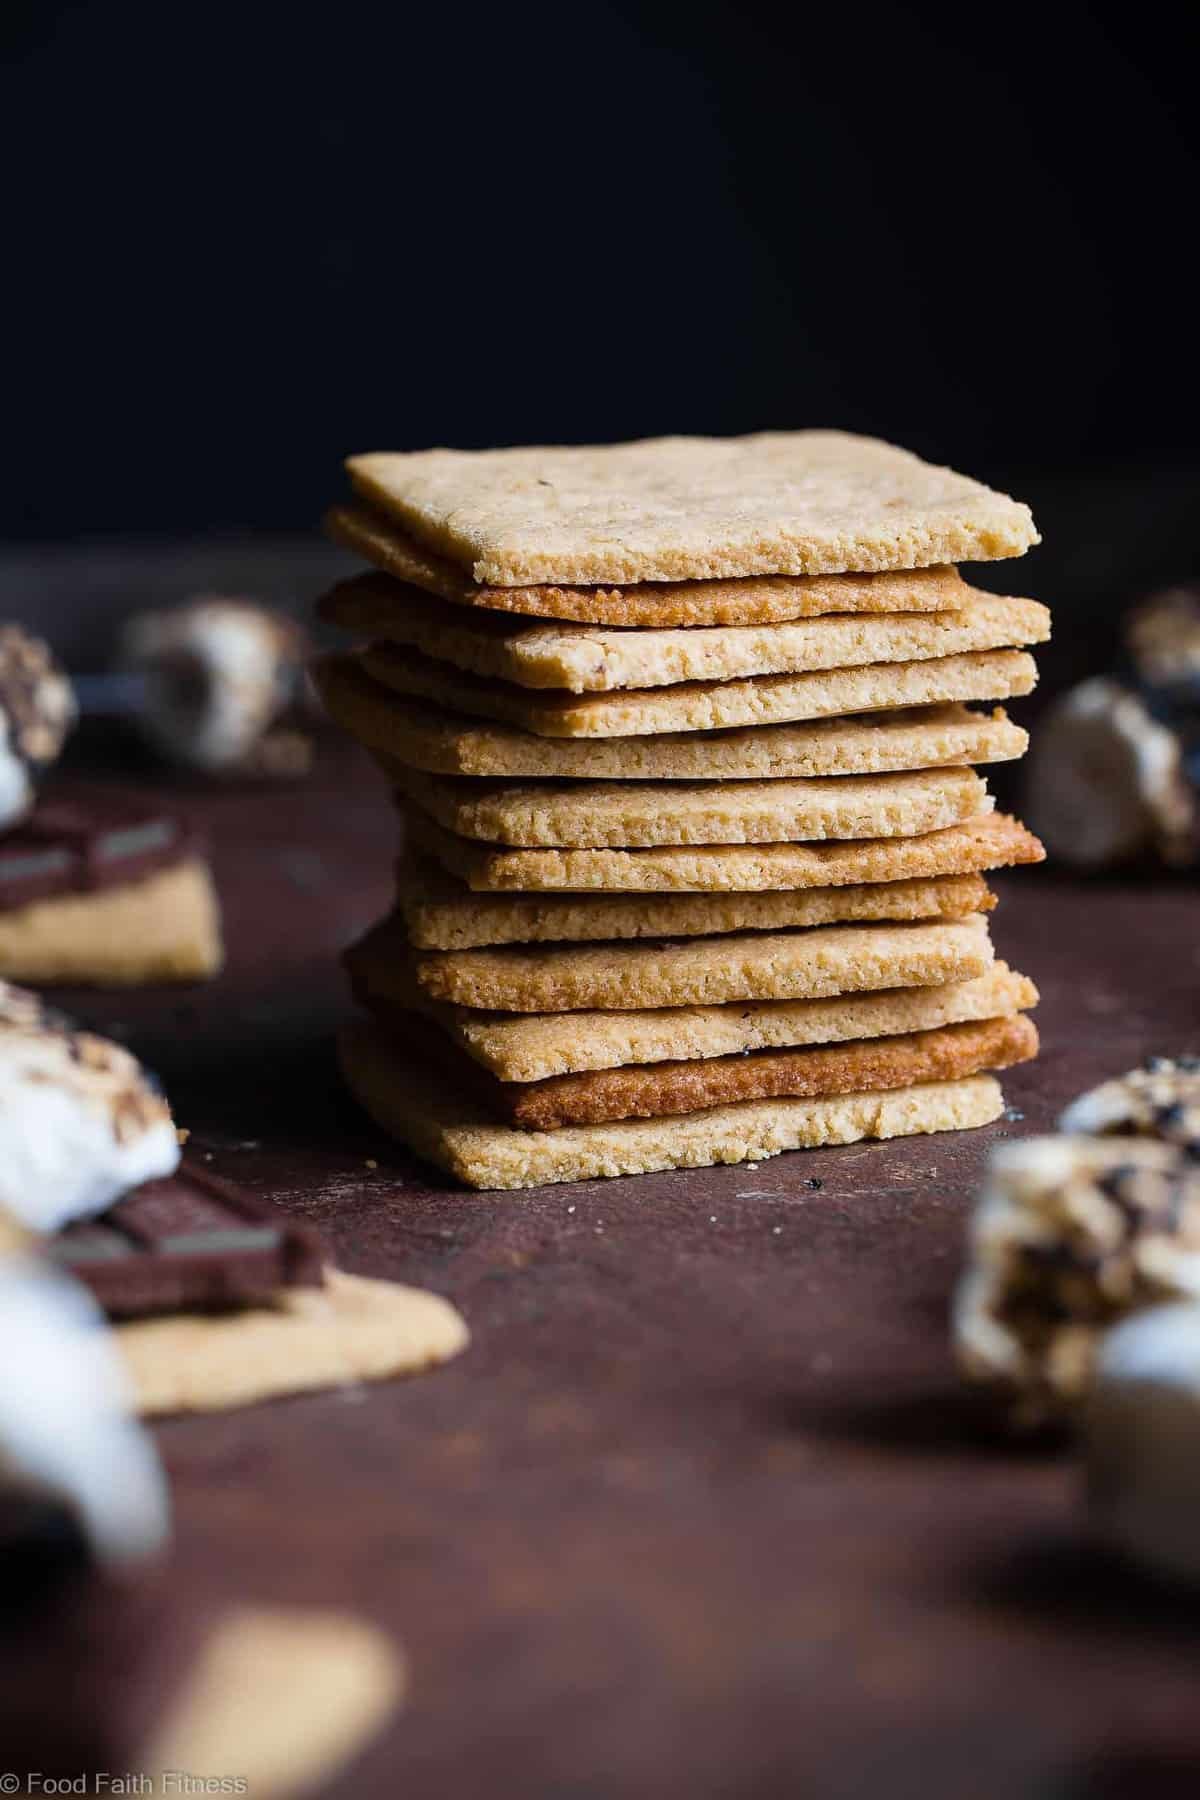 Low Carb Gluten Free Graham Crackers with Almond Flour - These healthy, homemade keto graham crackers are SO much better than store bought that you'll never believe they are paleo friendly, sugar free and only 6 simple ingredients! | #Foodfaithfitness | #Keto #LowCarb #Glutenfree #paleo #Healthy